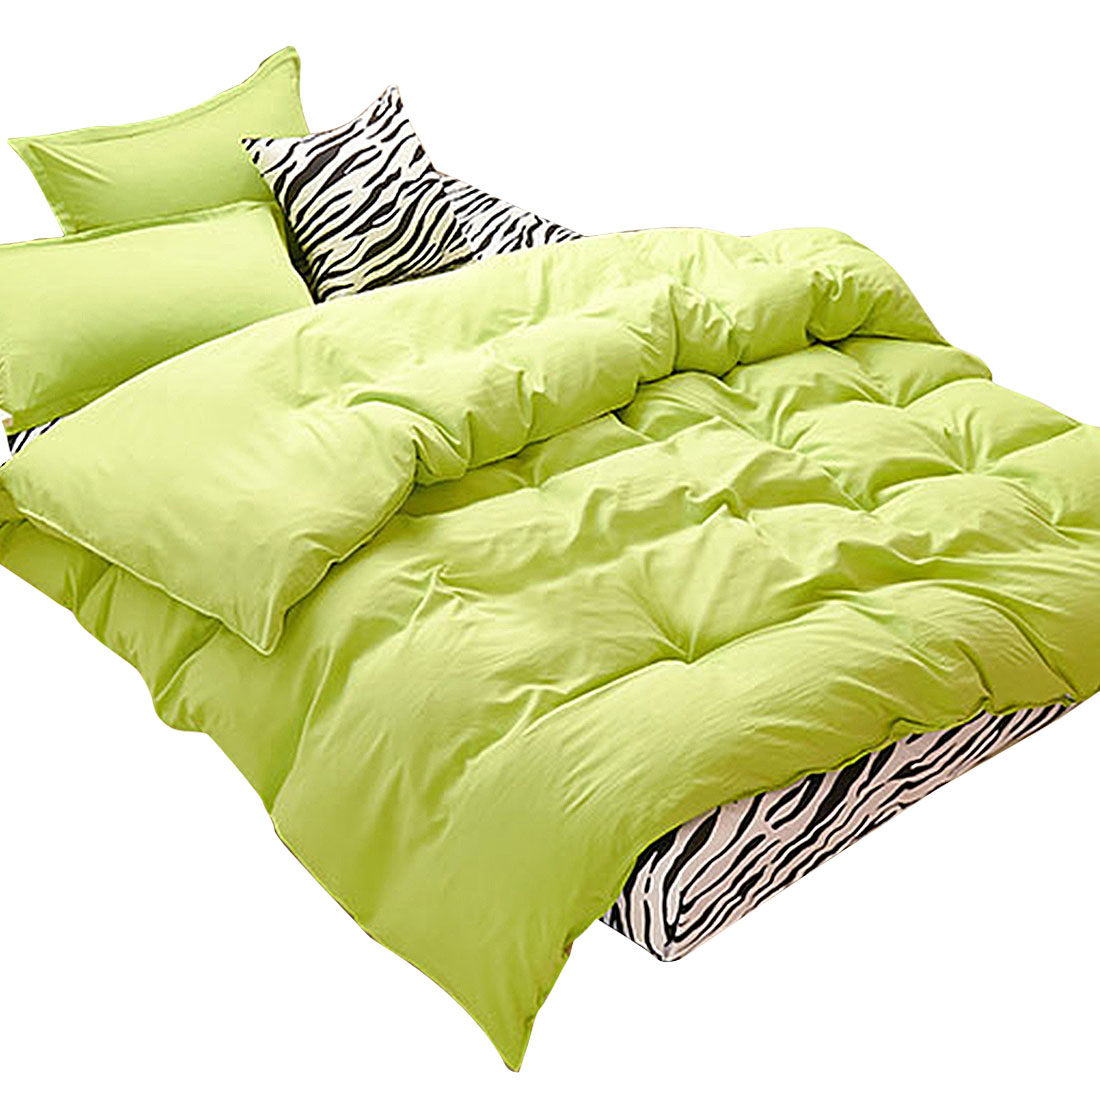 Bedroom Duvet Quilt Cover Pillowcase Bedding Set Bedclothes Green Single Size